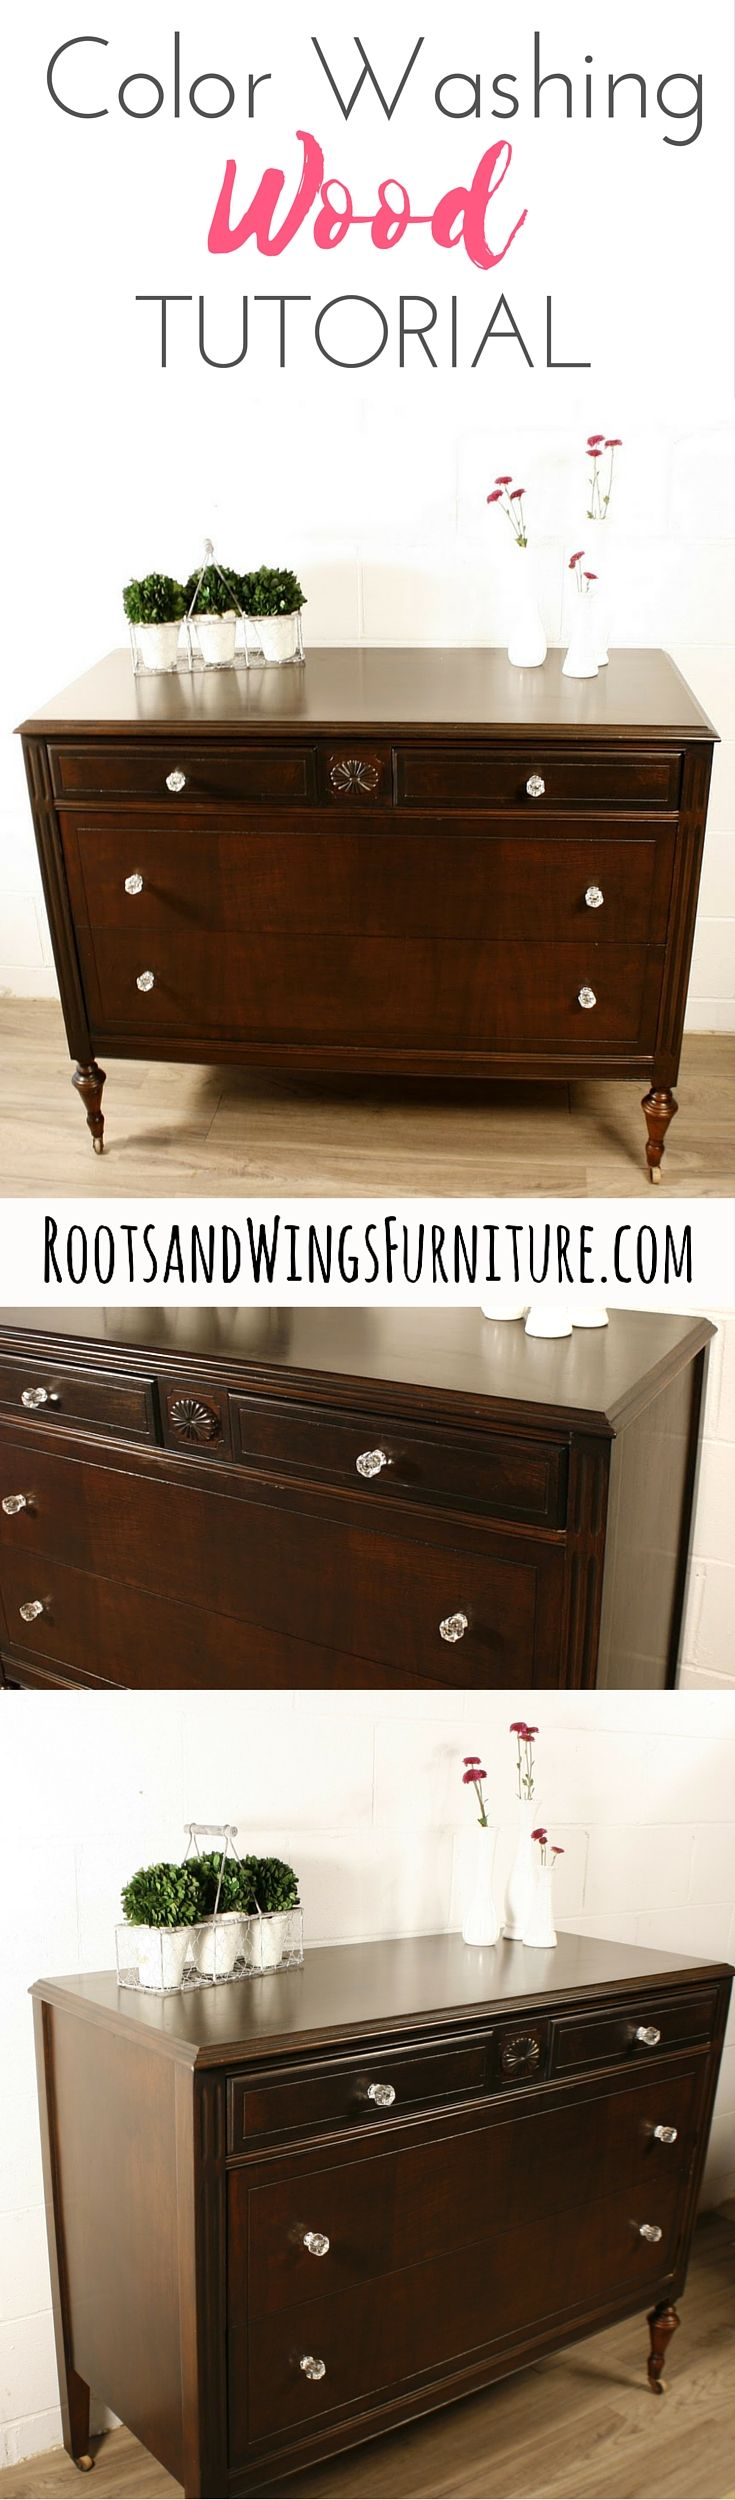 A tutorial video by Jenni of Roots and Wings Furniture How to color wash  over. Colored Wood Stains Furniture   penncoremedia com